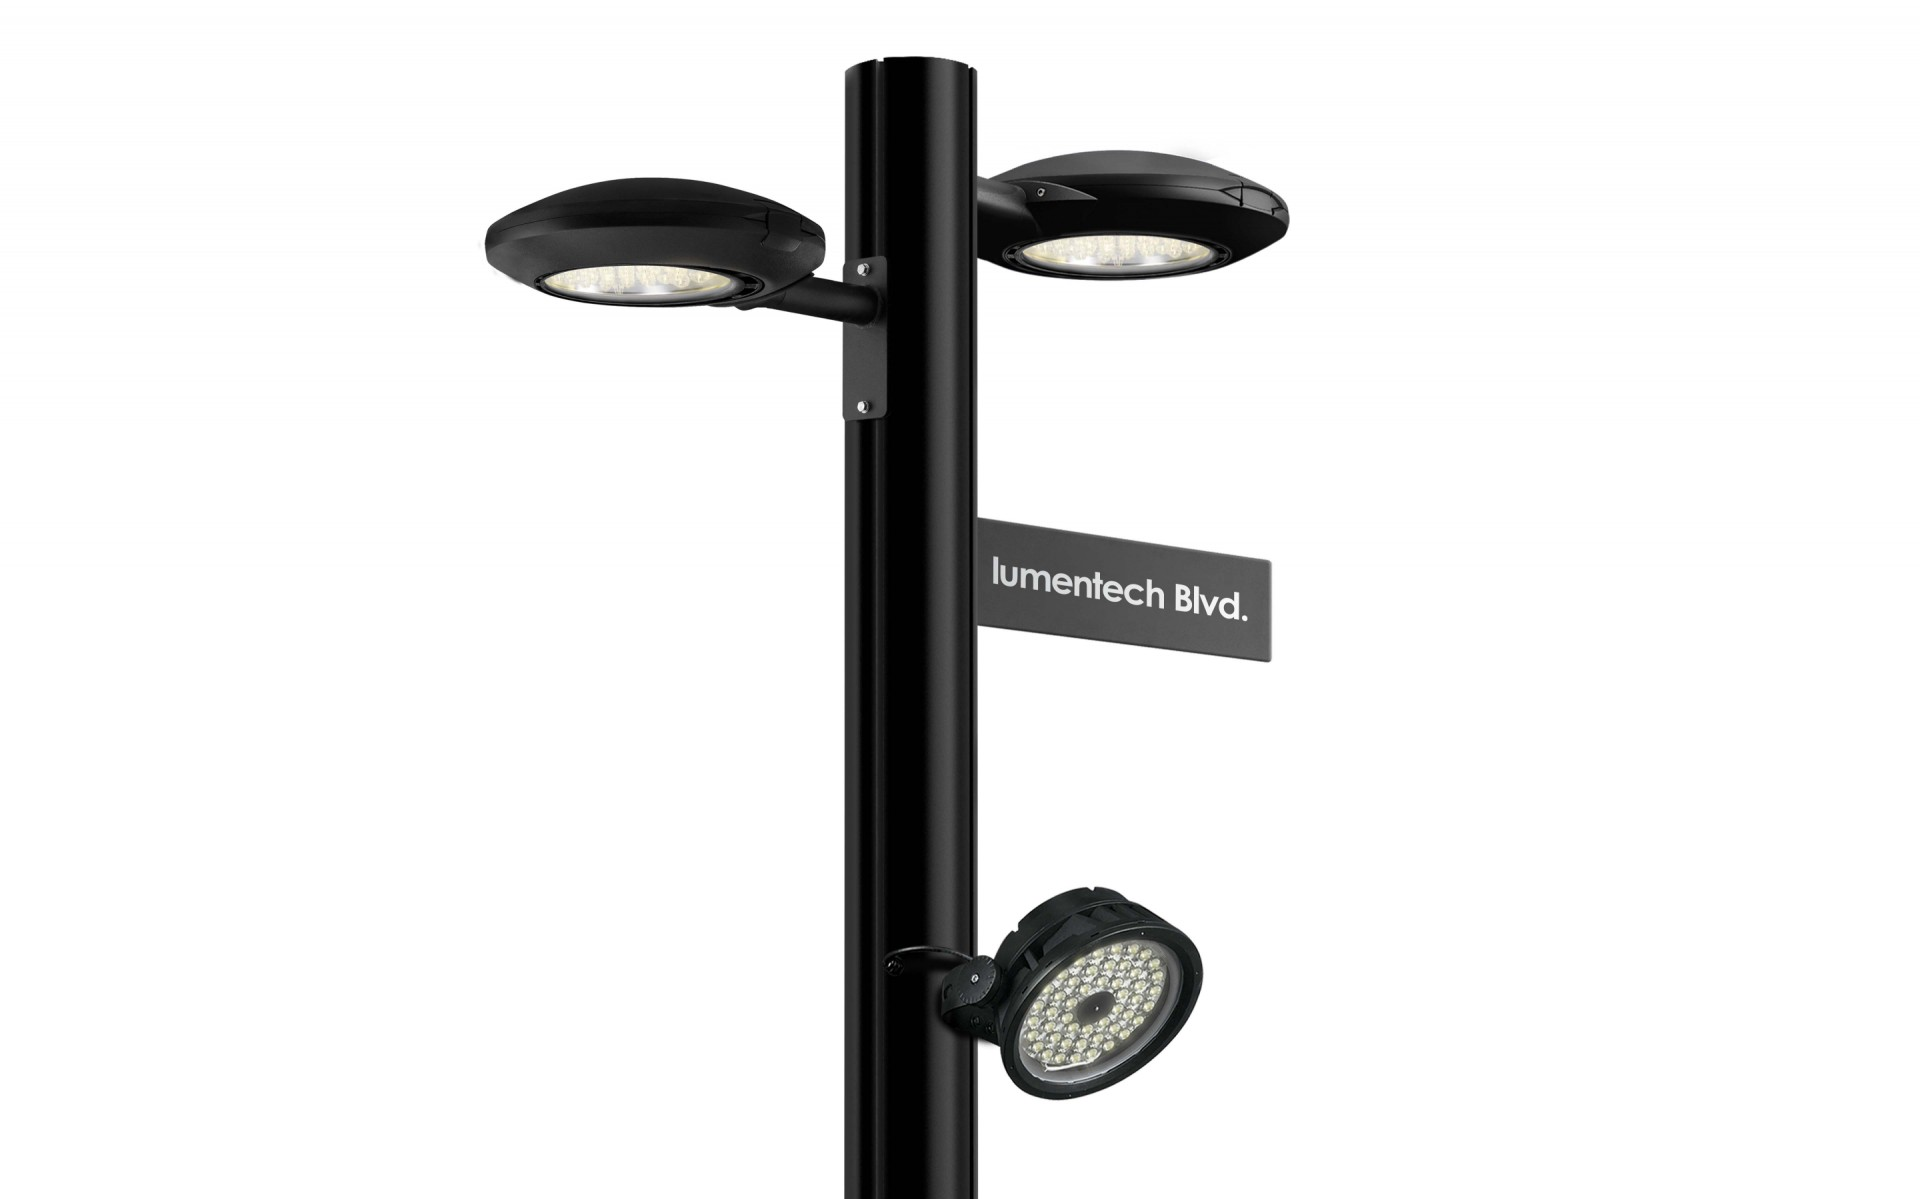 Lumentech Round  — Pure 100 + Lumenbeam Medium + Street sign holder